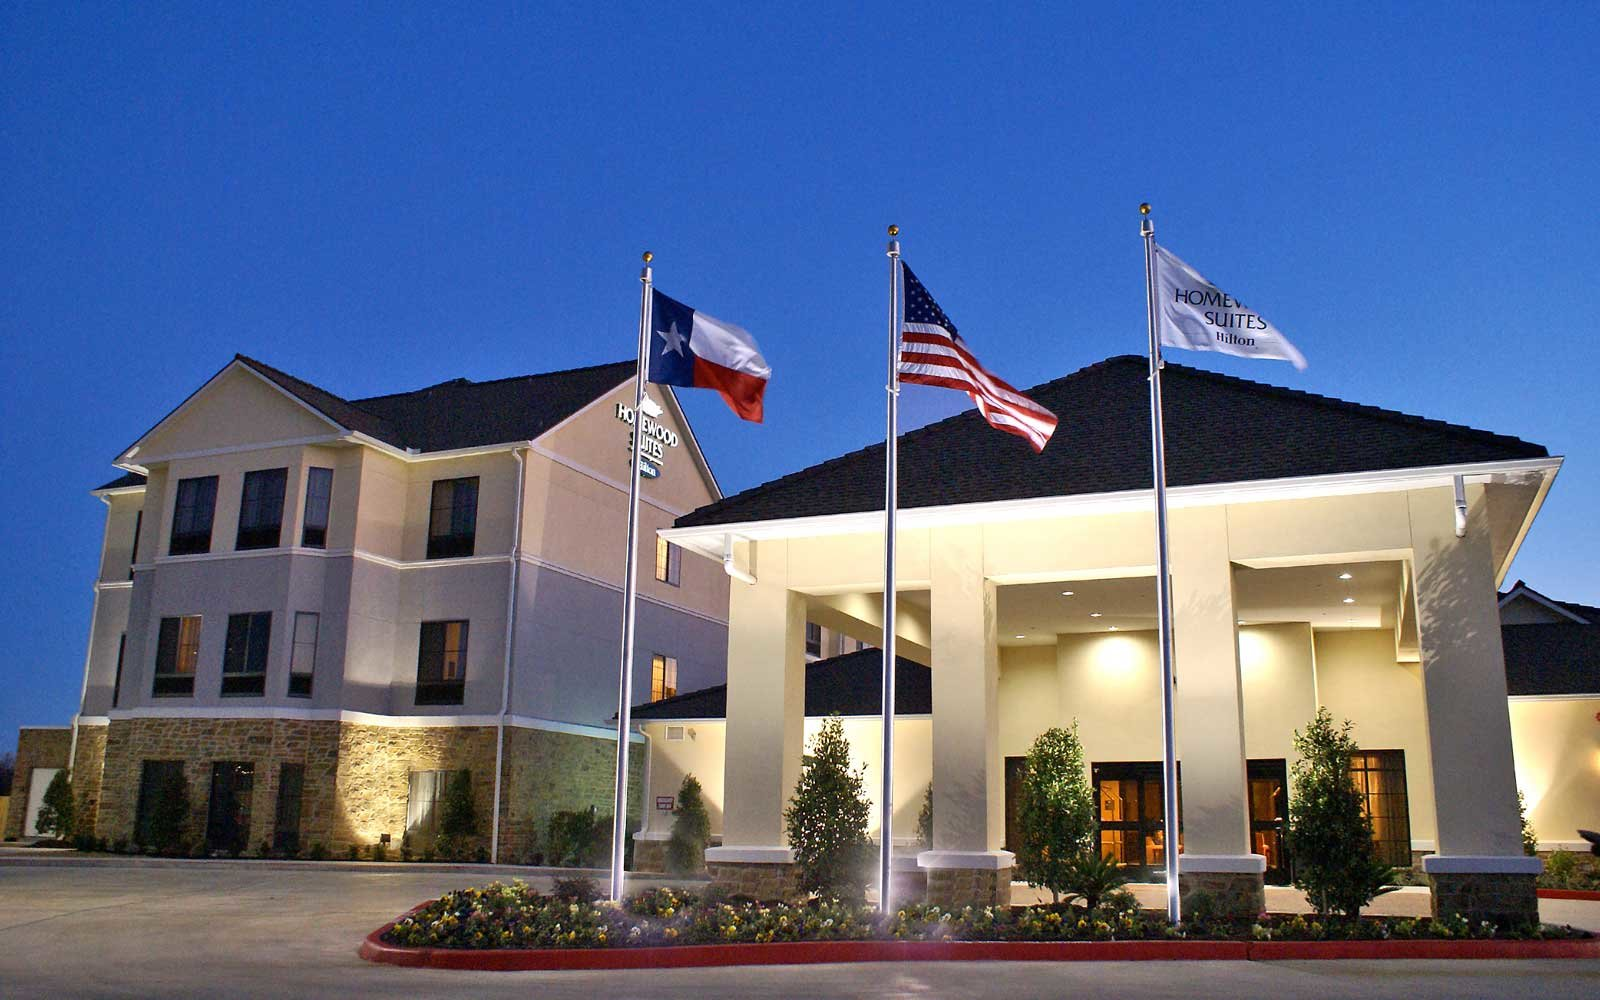 21-year-old front desk employee single-handedly keeps Texas hotel running during storm